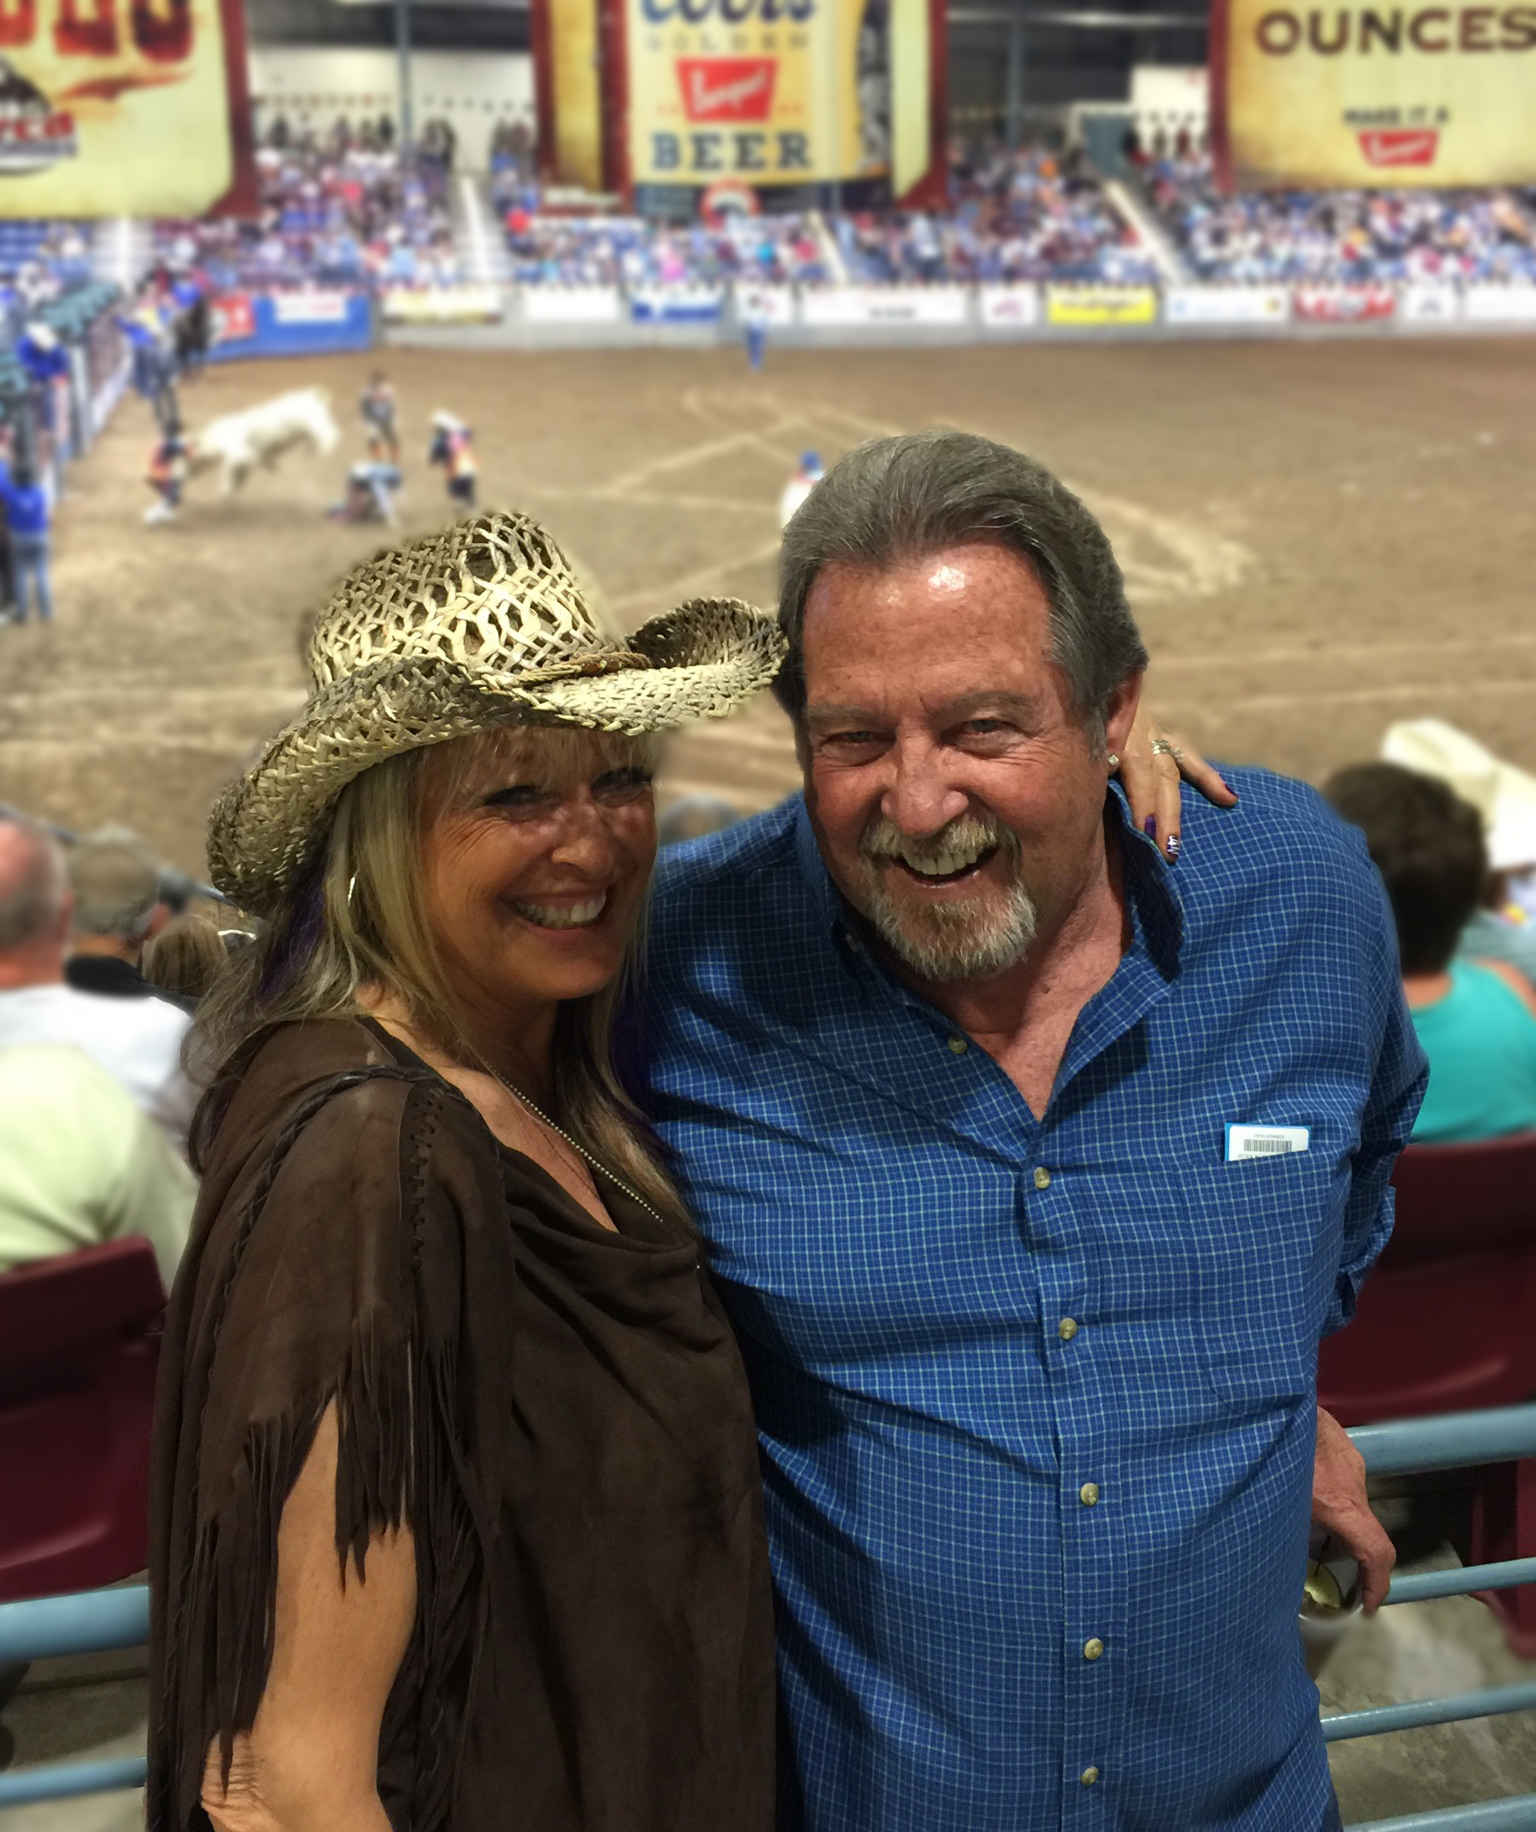 https://0201.nccdn.net/1_2/000/000/0c9/fb0/Bruce-and-lin-at-the-rodeo.jpg